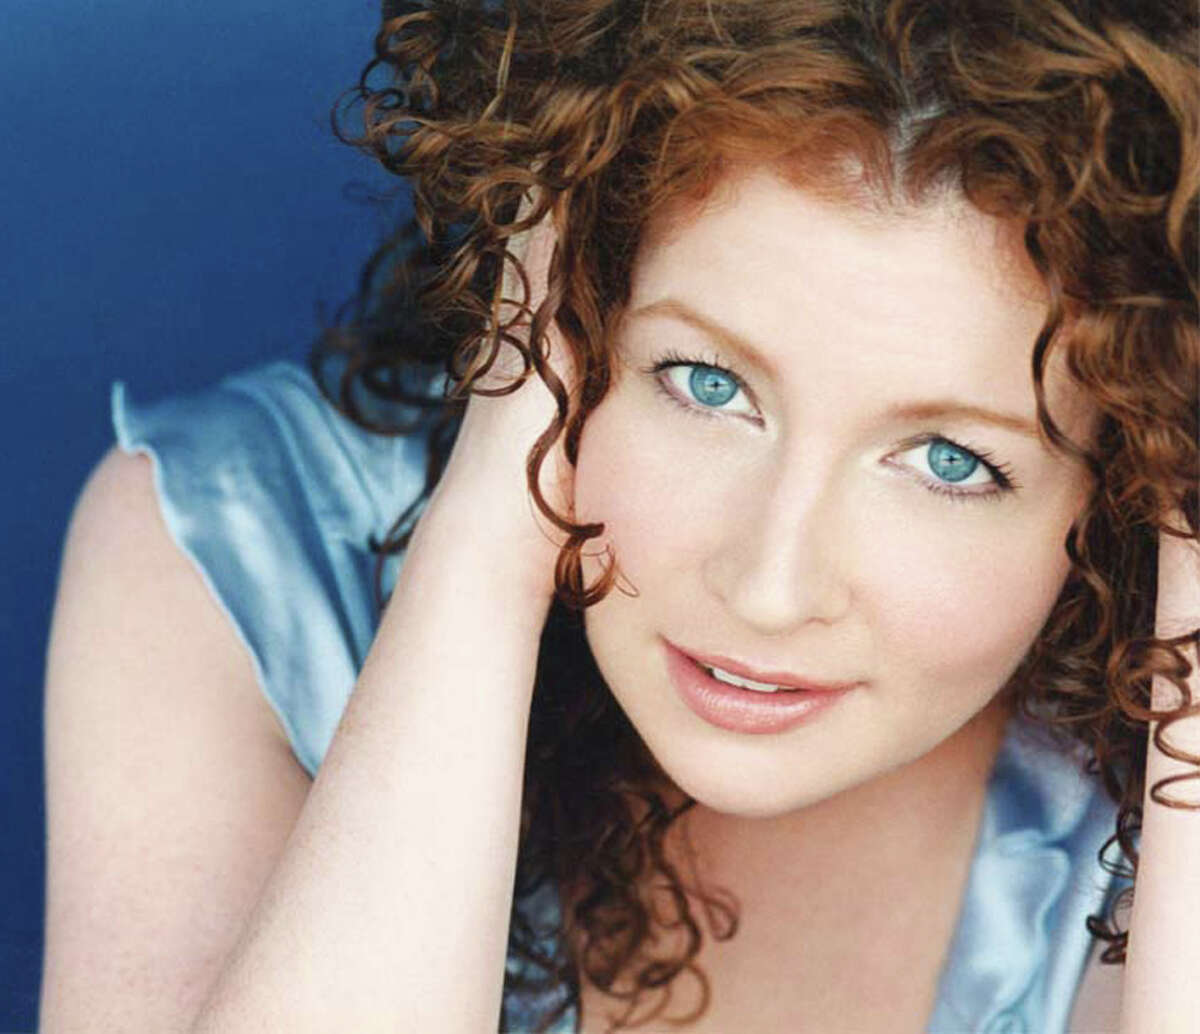 Performing Arts Conservatory new improve teaching artist Alexandrea McHale who is a stand-up comic, improv performer and actress who has performed on The Tonight Show with Jay Leno, The Late Late Show and Comedy Central.